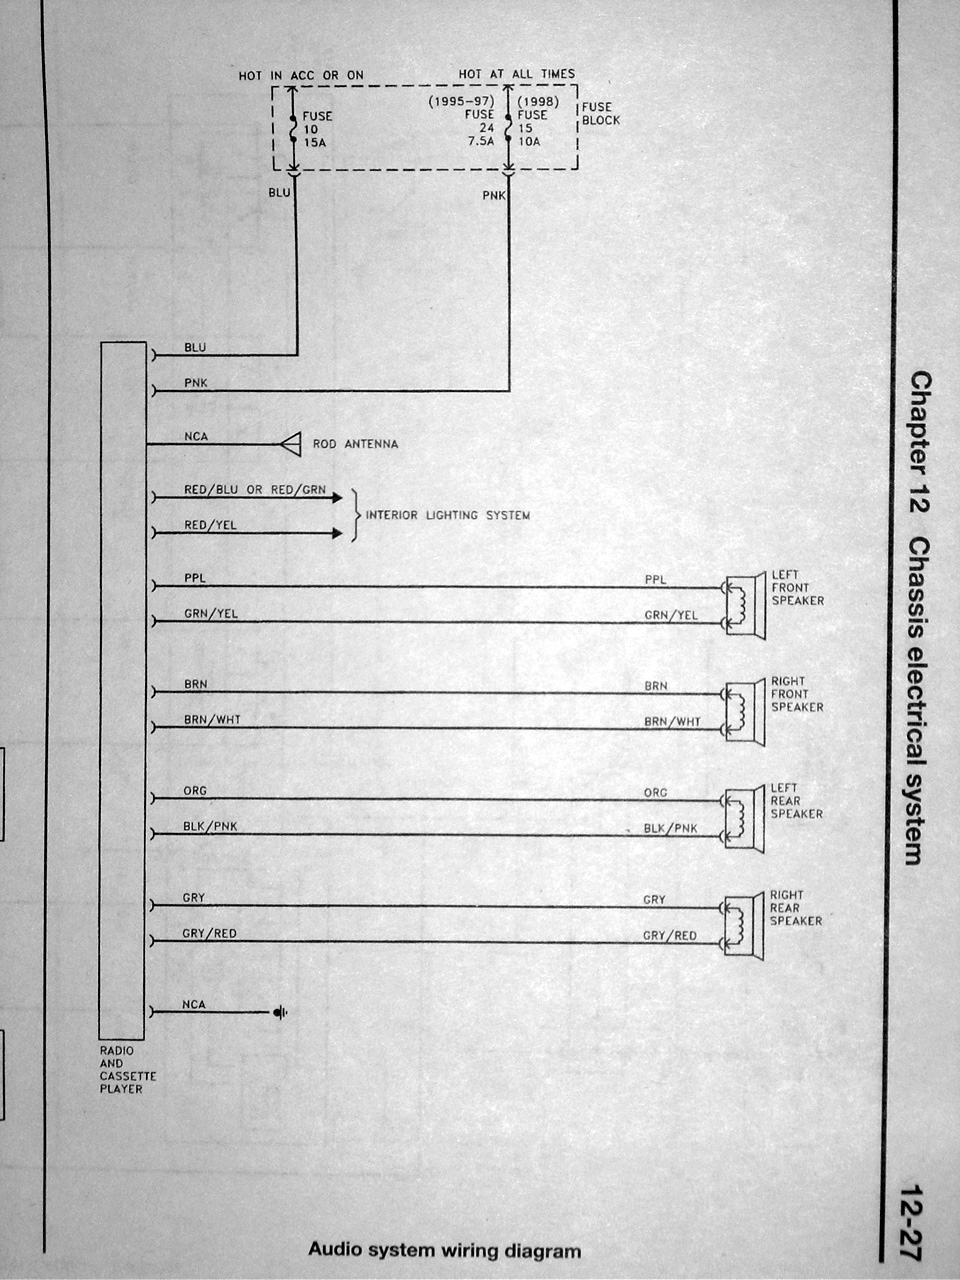 Stereo Wiring Diagram For 2005 Nissan Xterra Manual E Books Door Speaker